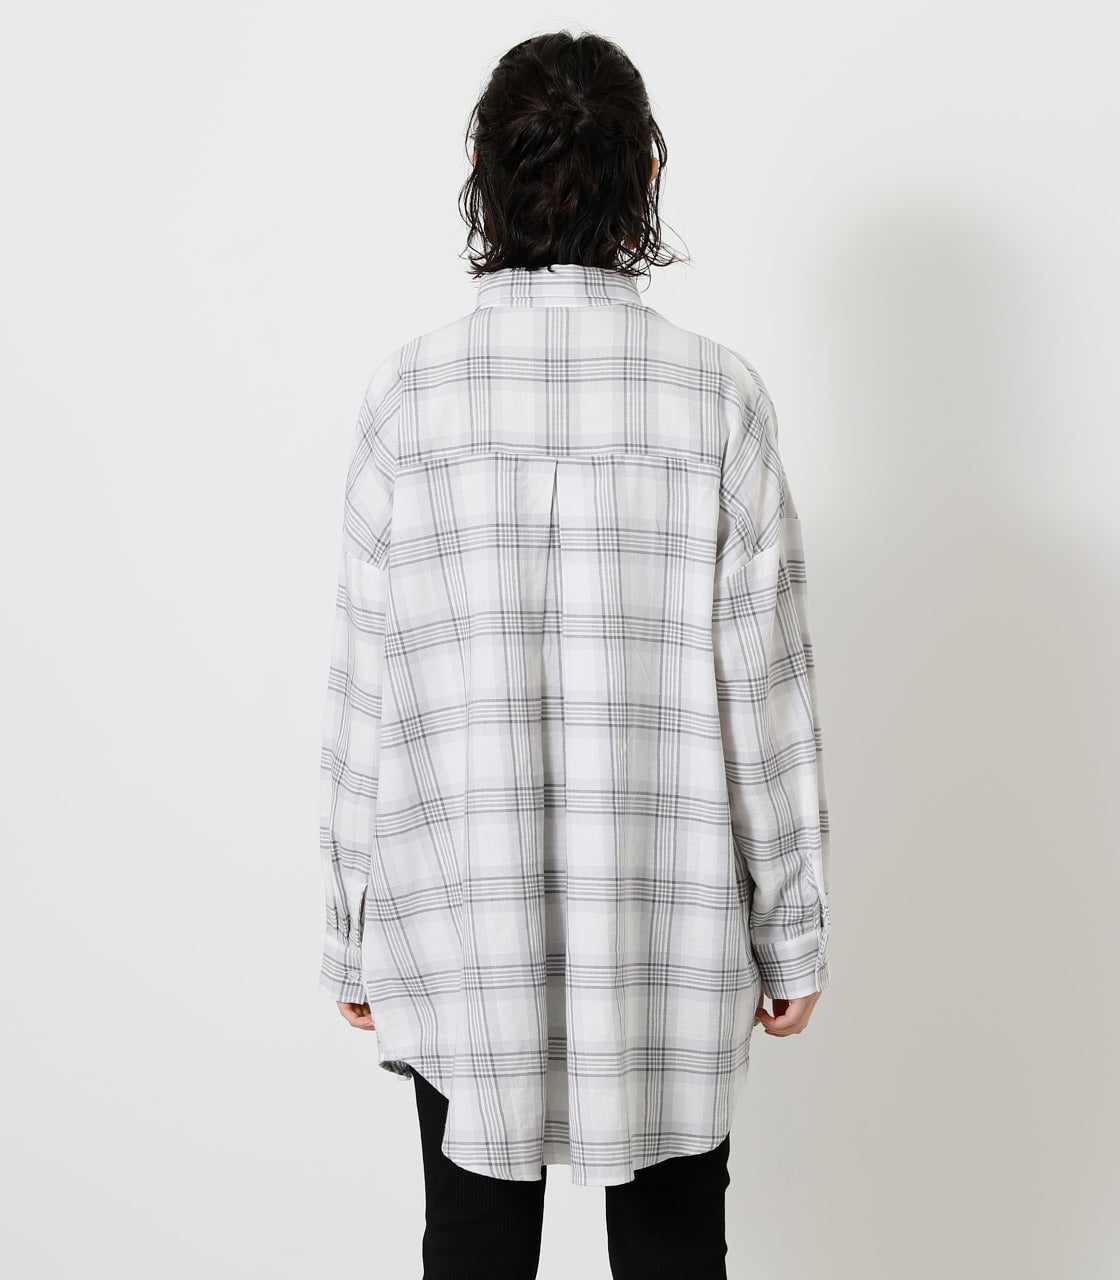 CHECK LOOSE SHIRT/チェックルーズシャツ 詳細画像 柄WHT 6